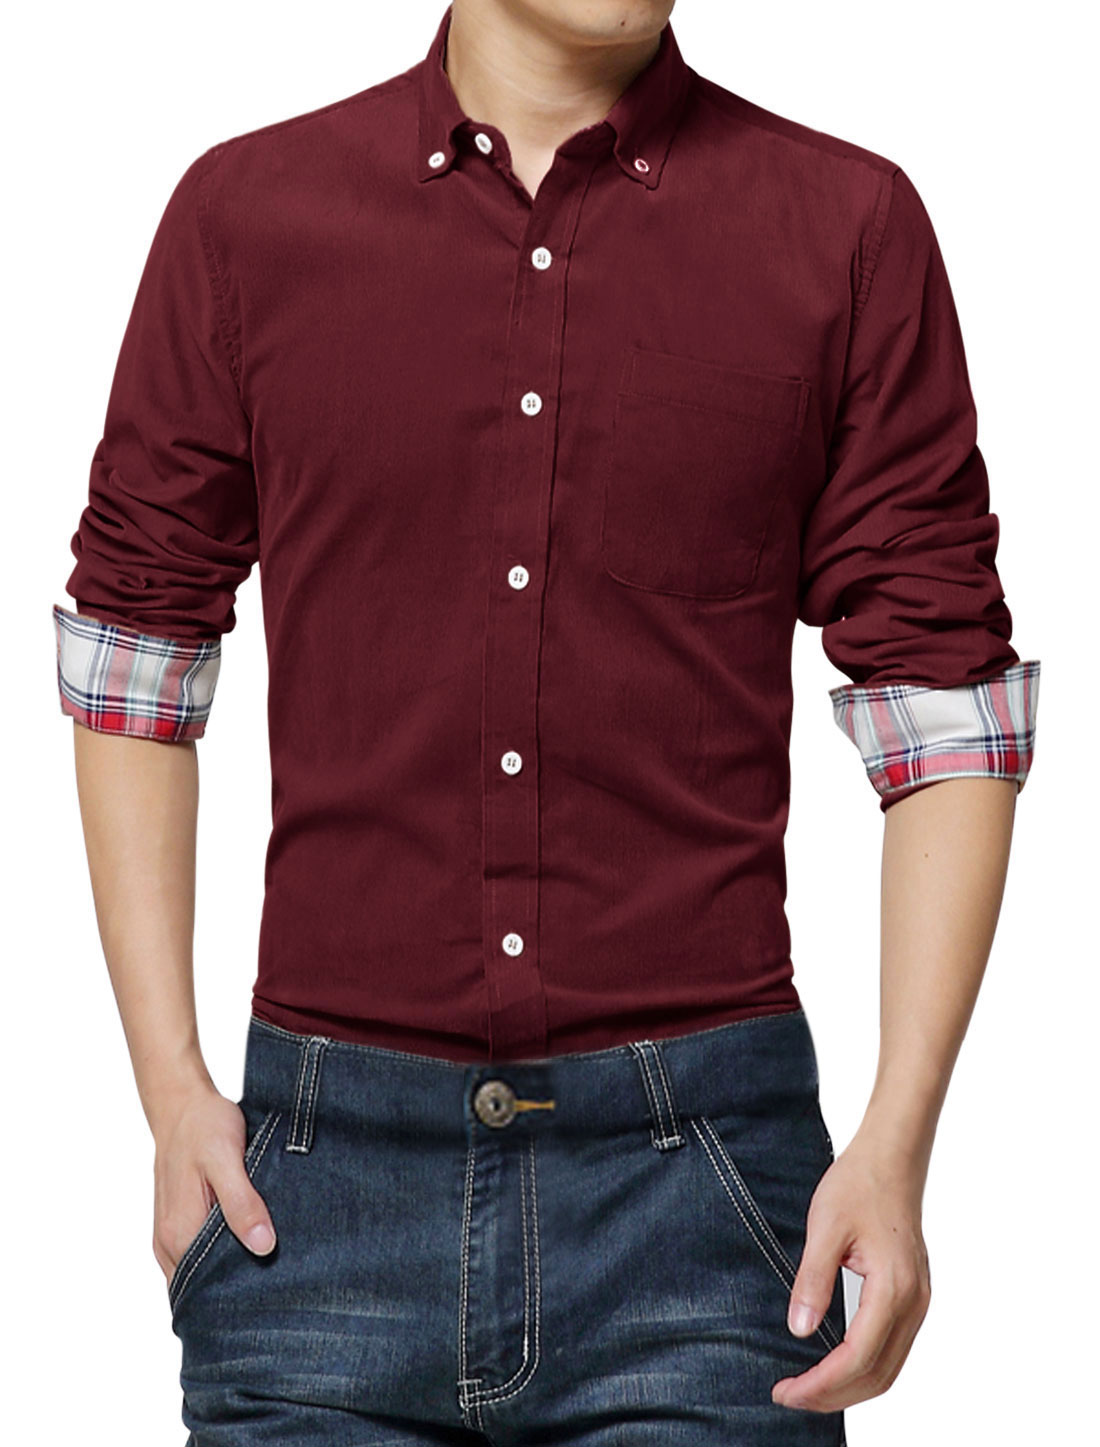 Man One Chest Pocket Full Sleeves Burgundy Corduroy Shirt M